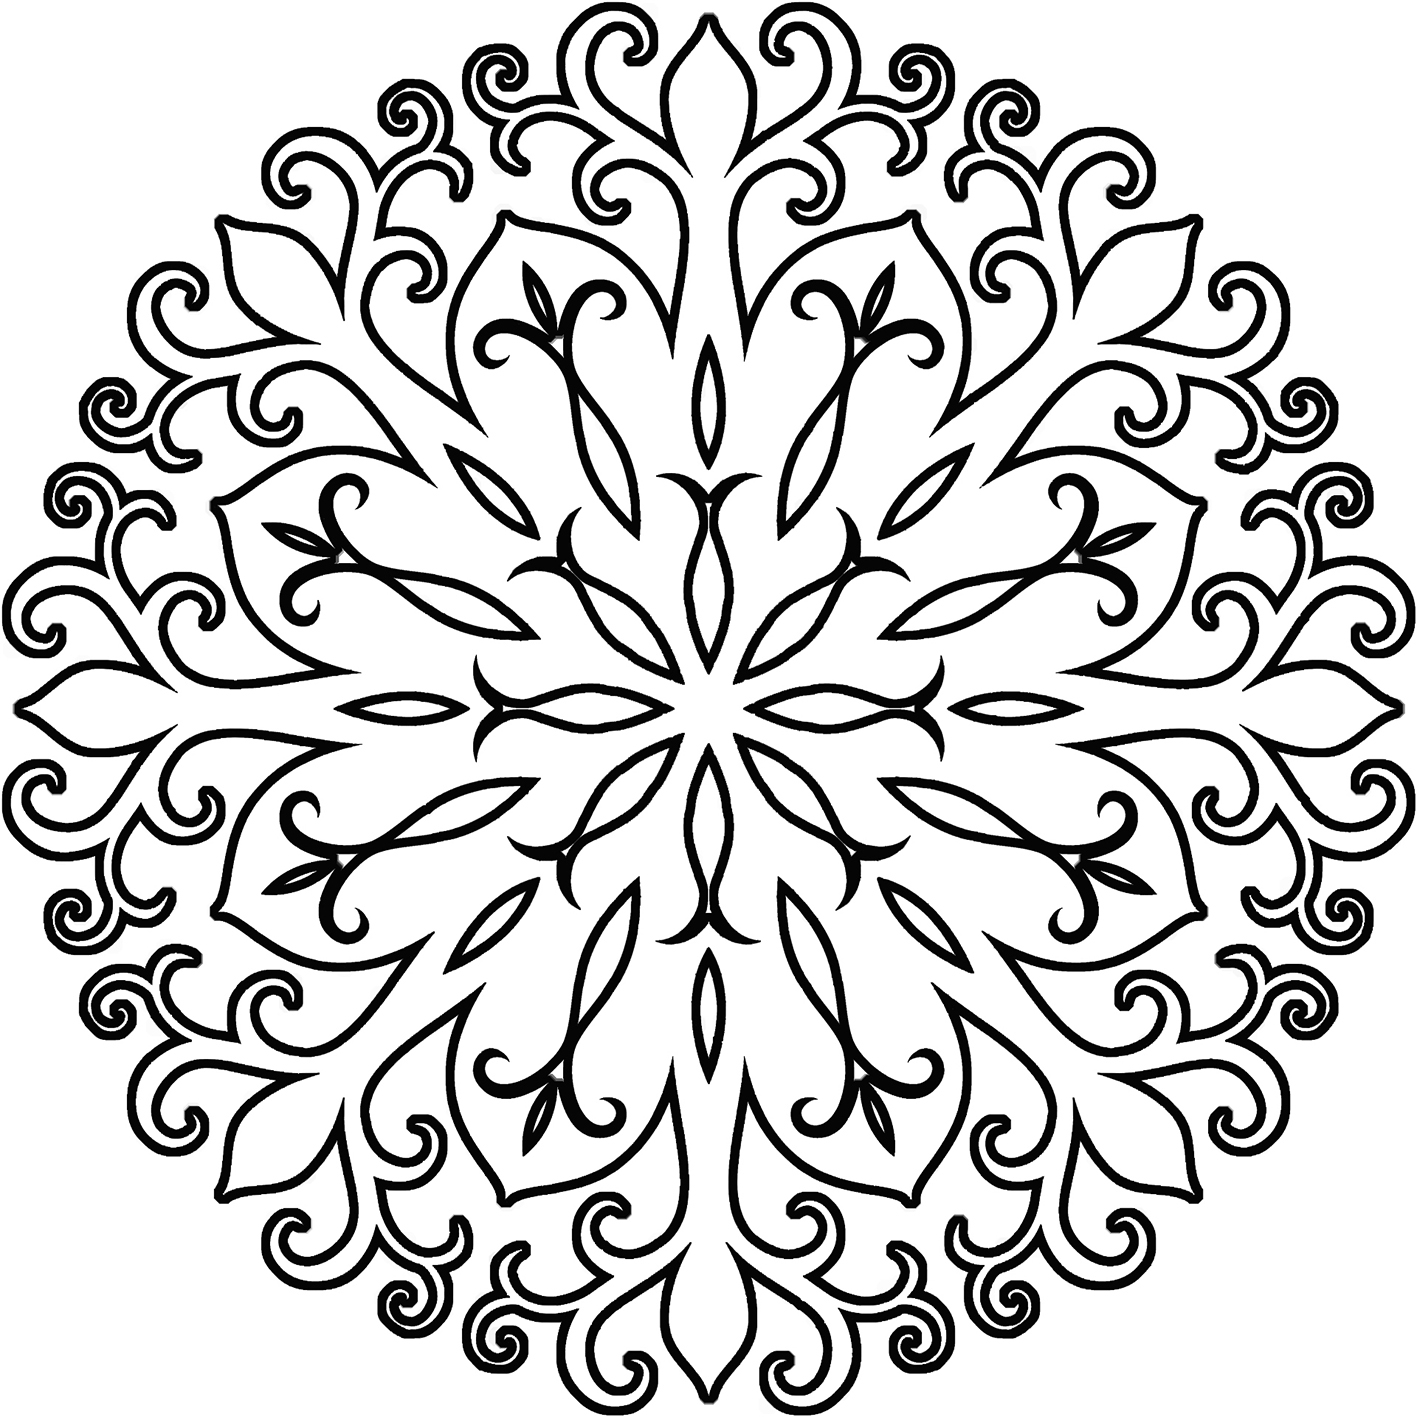 filigree-flake coloring mandala